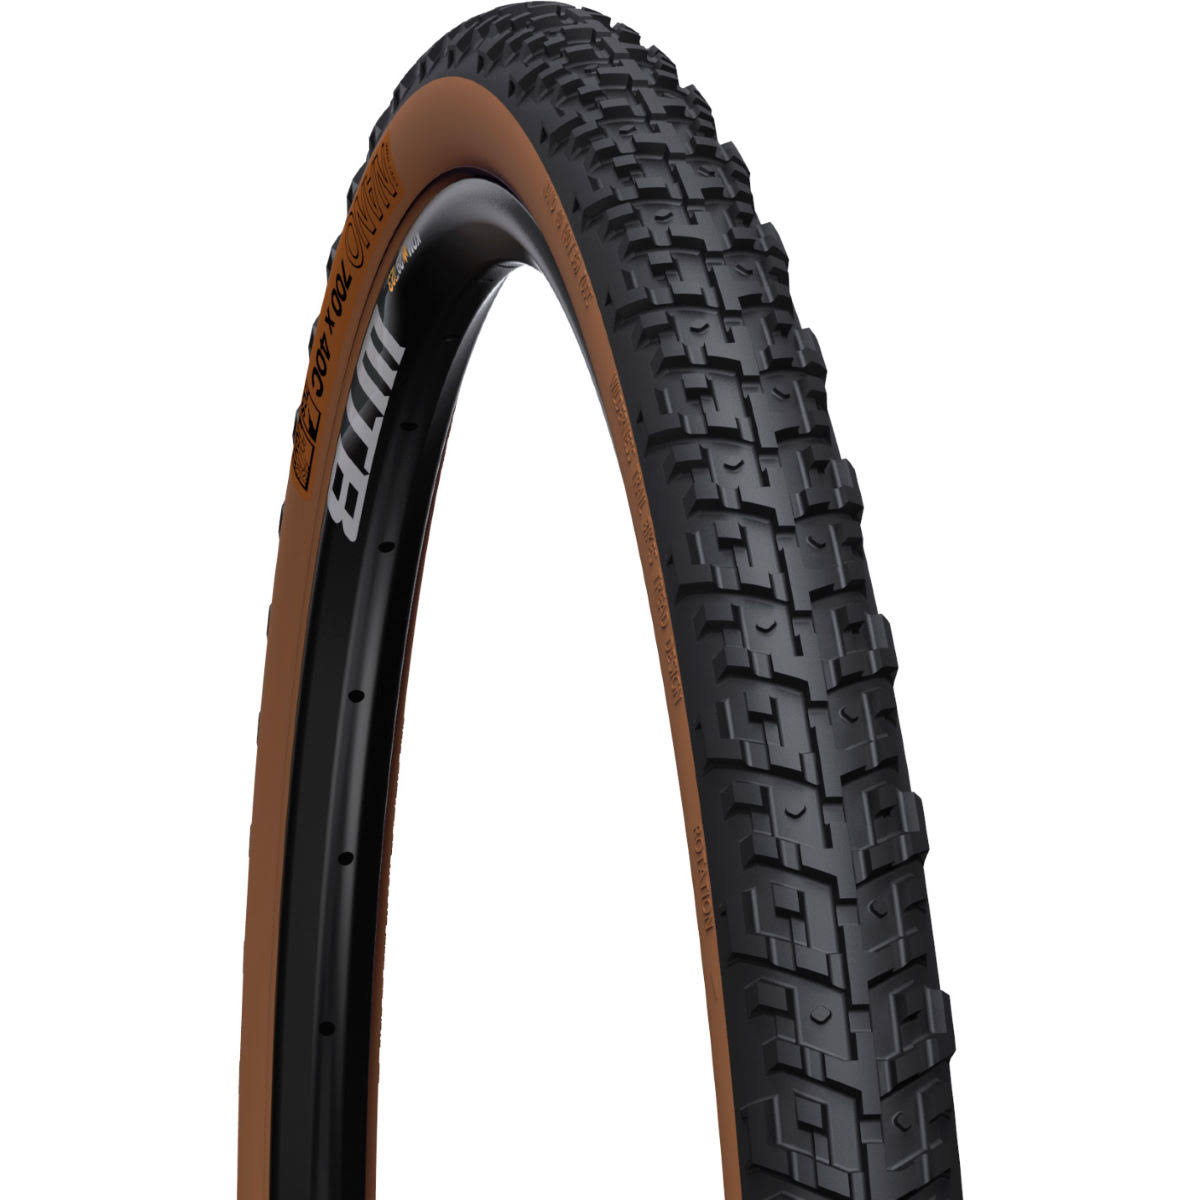 WTB Nano 700 x 40C TCS Light FR Tire (Tan)